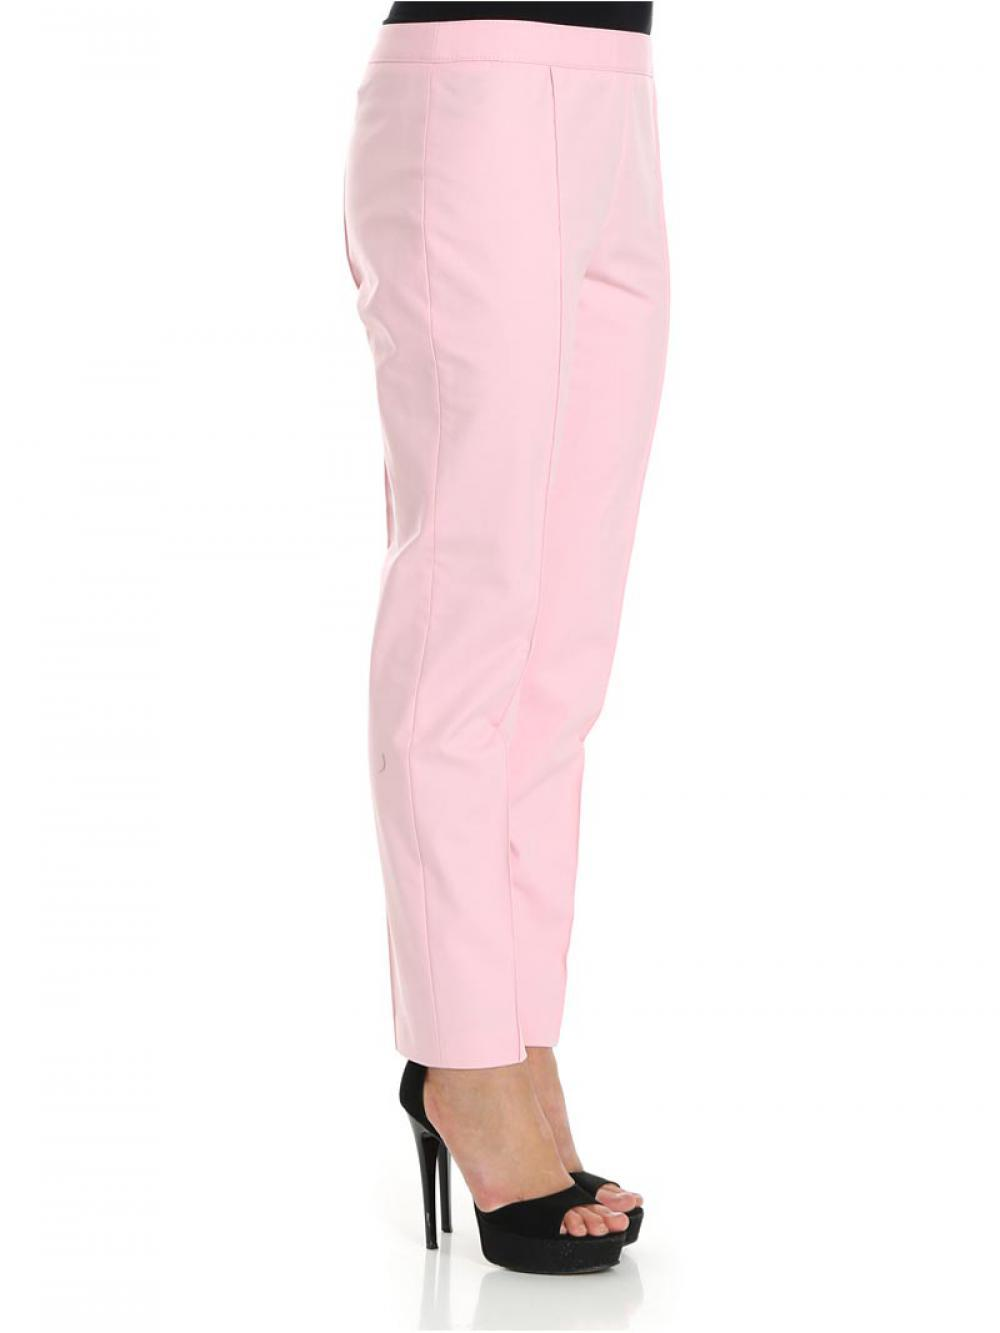 pantalone-boutique-moschino-nbsp-in-misto-cotone-donna-boutique-moschino-cod-j0313